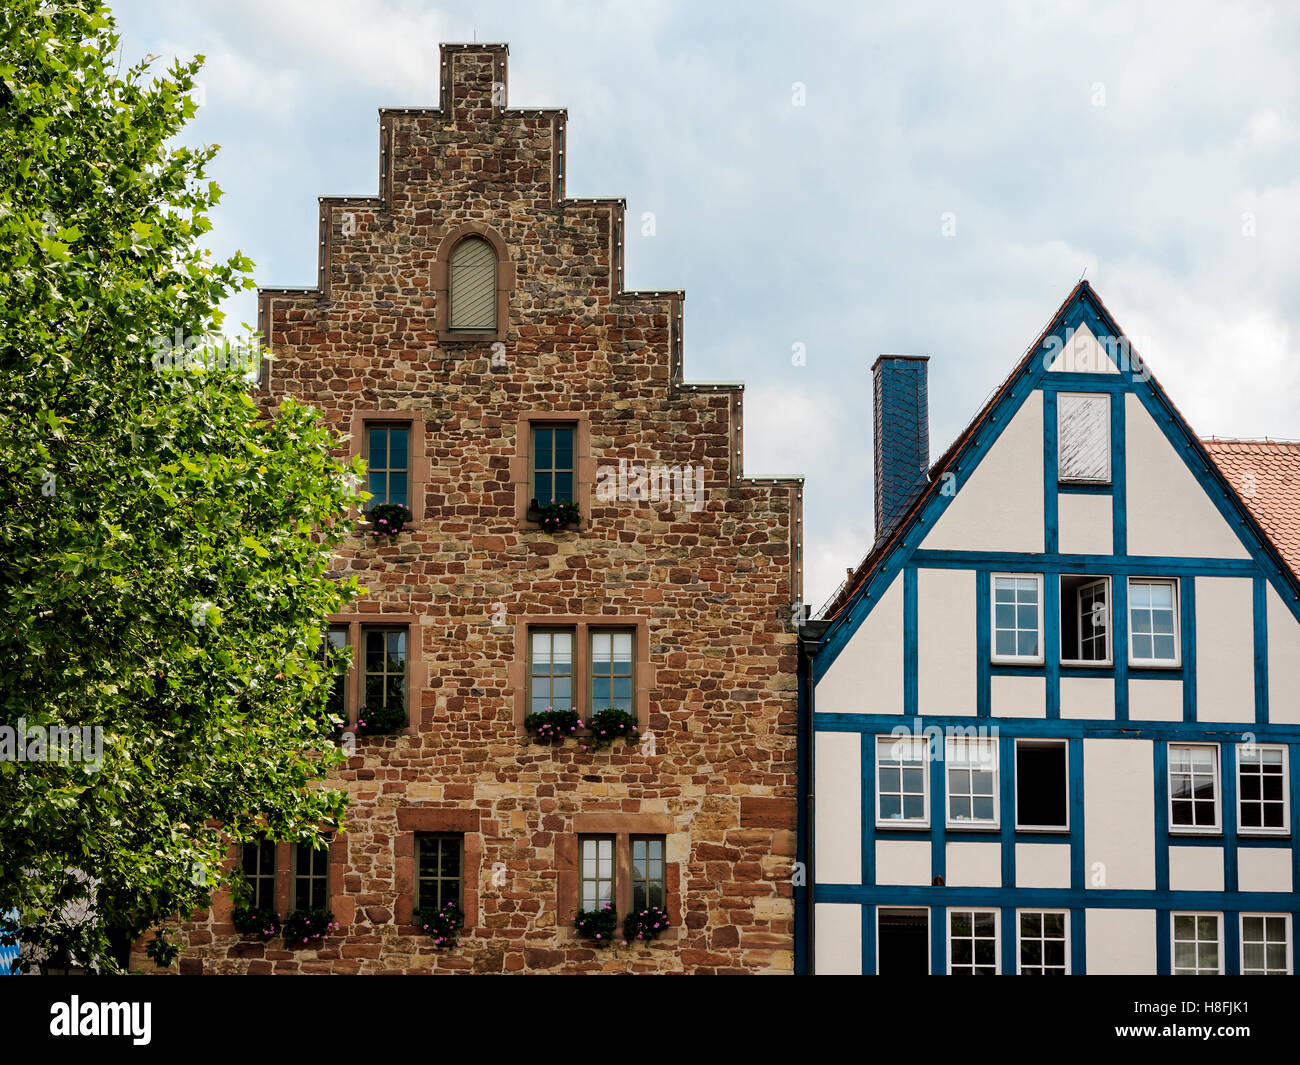 The Steinhaus in small medieval town Frankenberg Eder, Germany. Built in 1240 - Stock Image